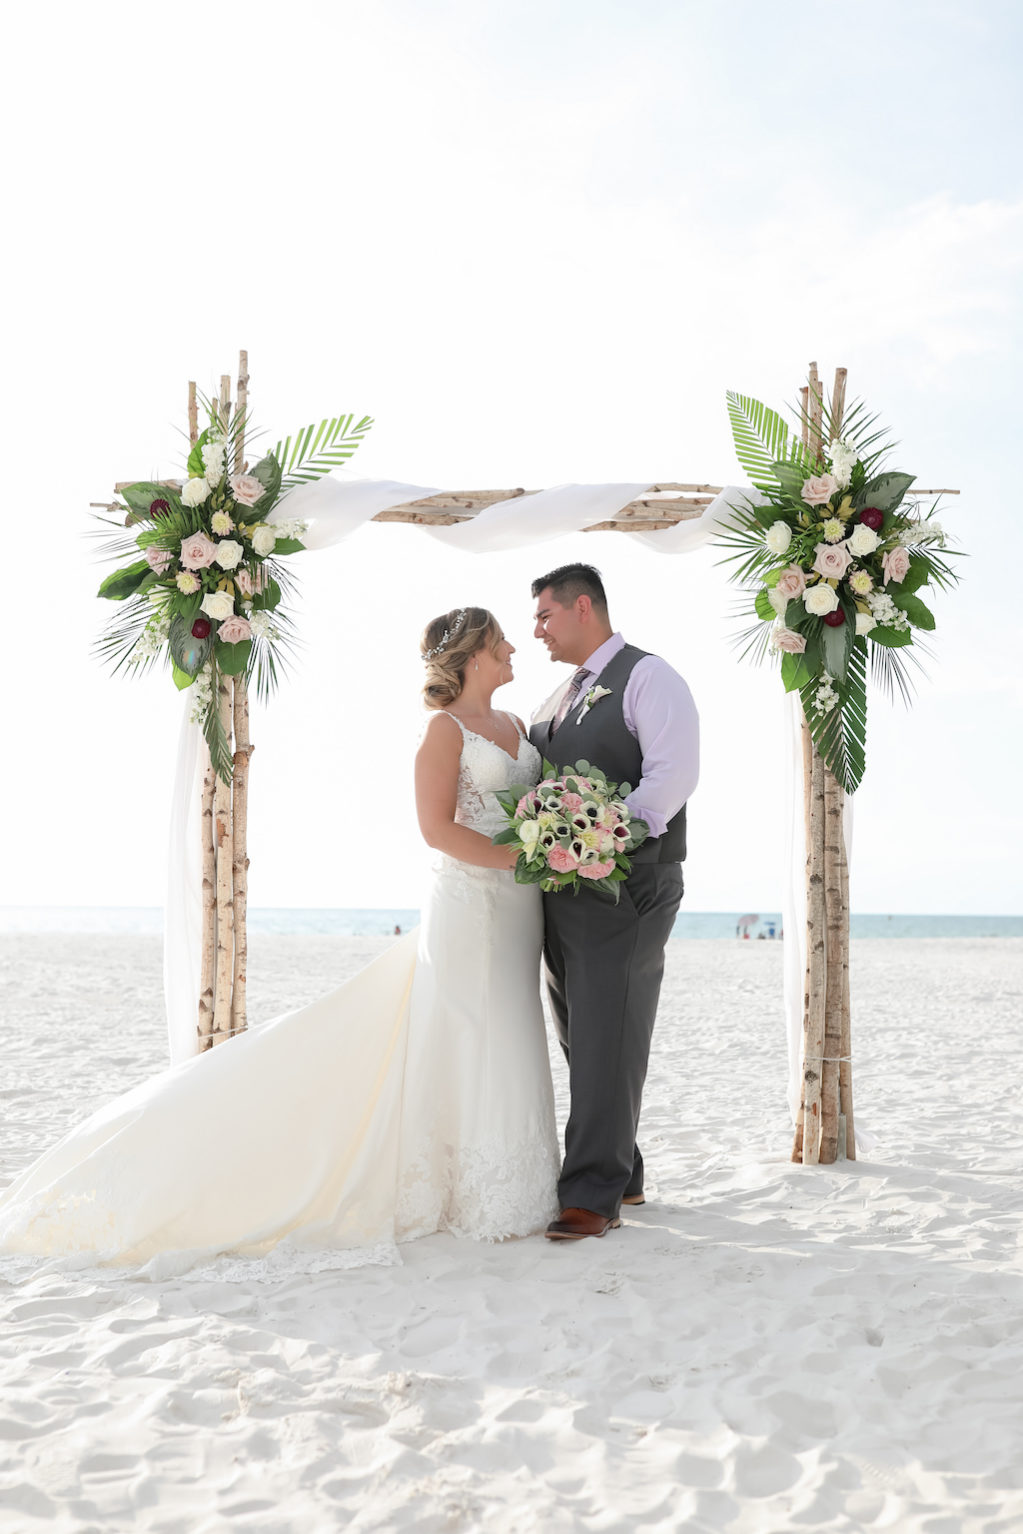 Clearwater Beach Waterfront Bride and Groom Wedding Ceremony Portrait Under Birchwood Arch with Blush pink, White and Red Florals with Green Palm Leaves | Tampa Bay Wedding Photographer Lifelong Photography Studios | Clearwater Beach Hotel Wedding Venue Hilton Clearwater Beach